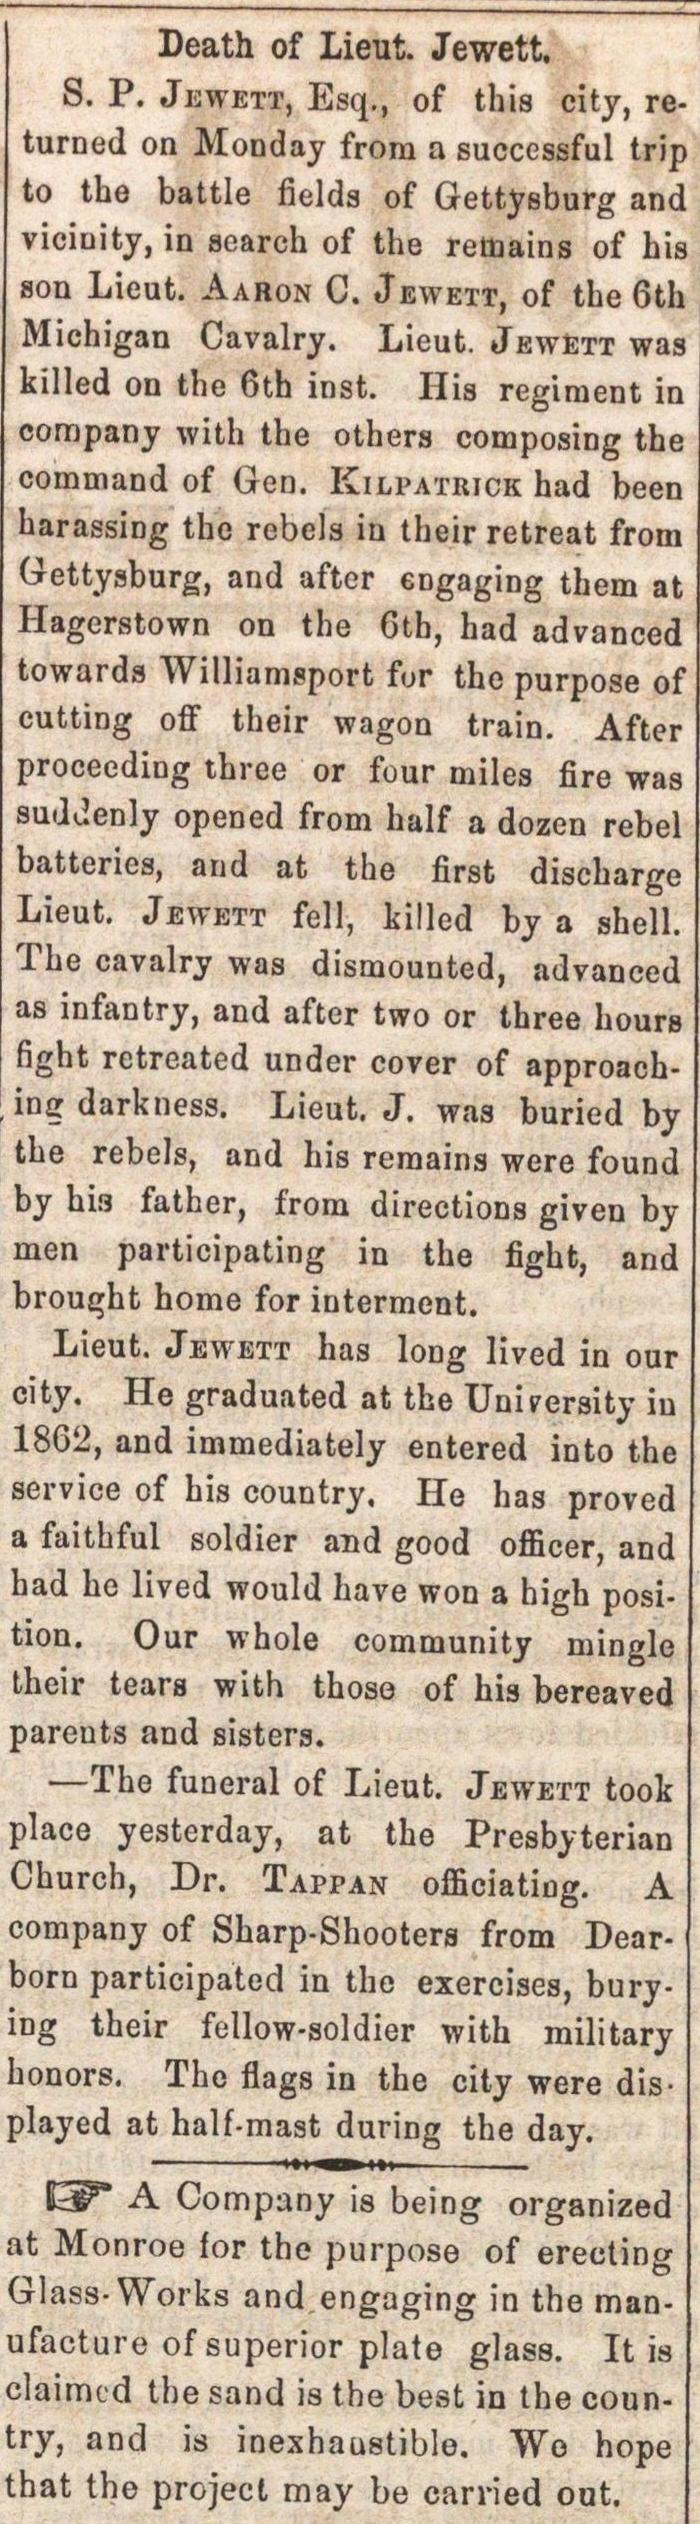 Death Of Lieut. Jewett image